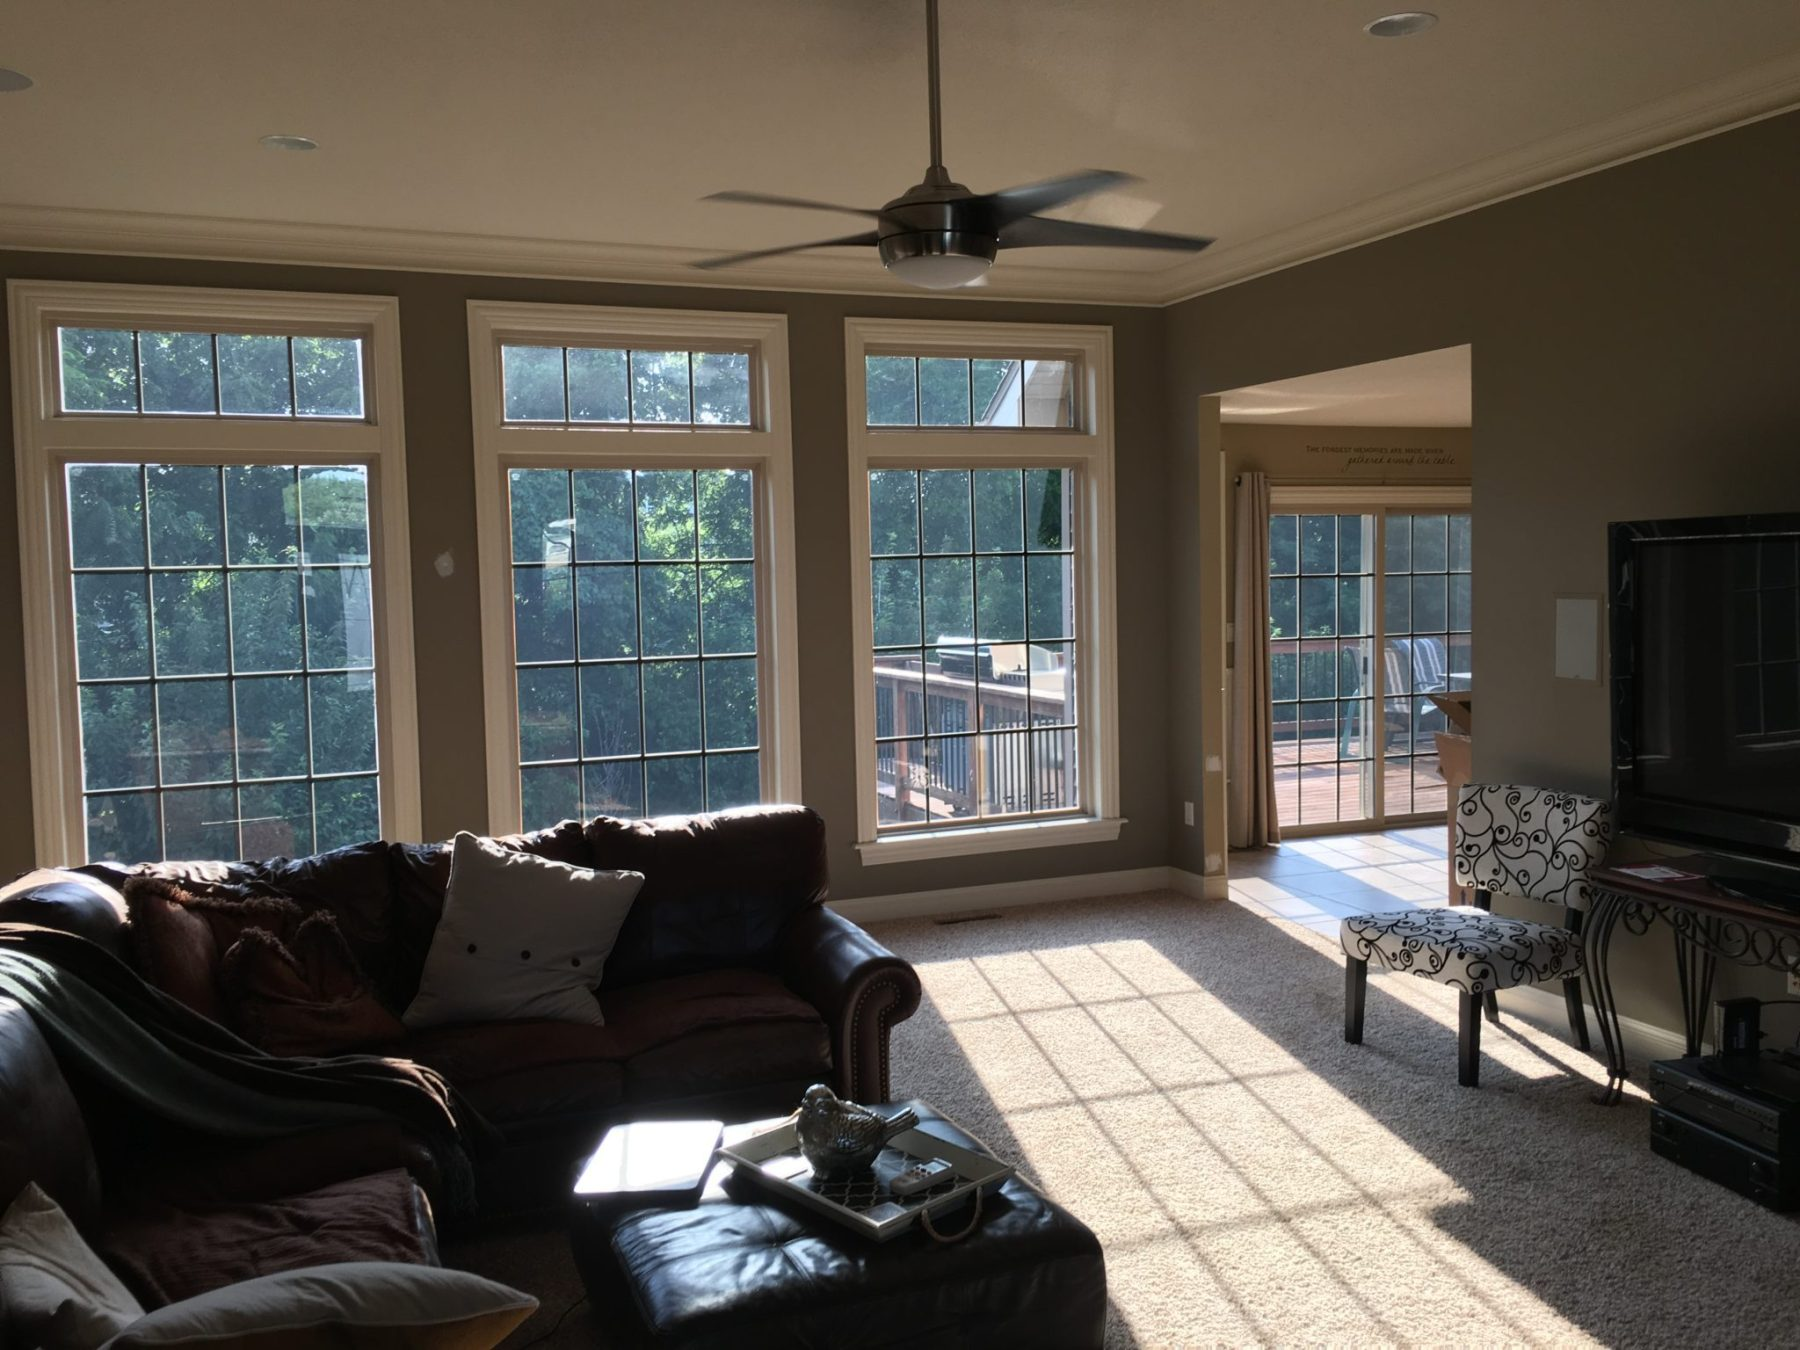 Heat, Glare and Privacy Addressed in this Home Improvement